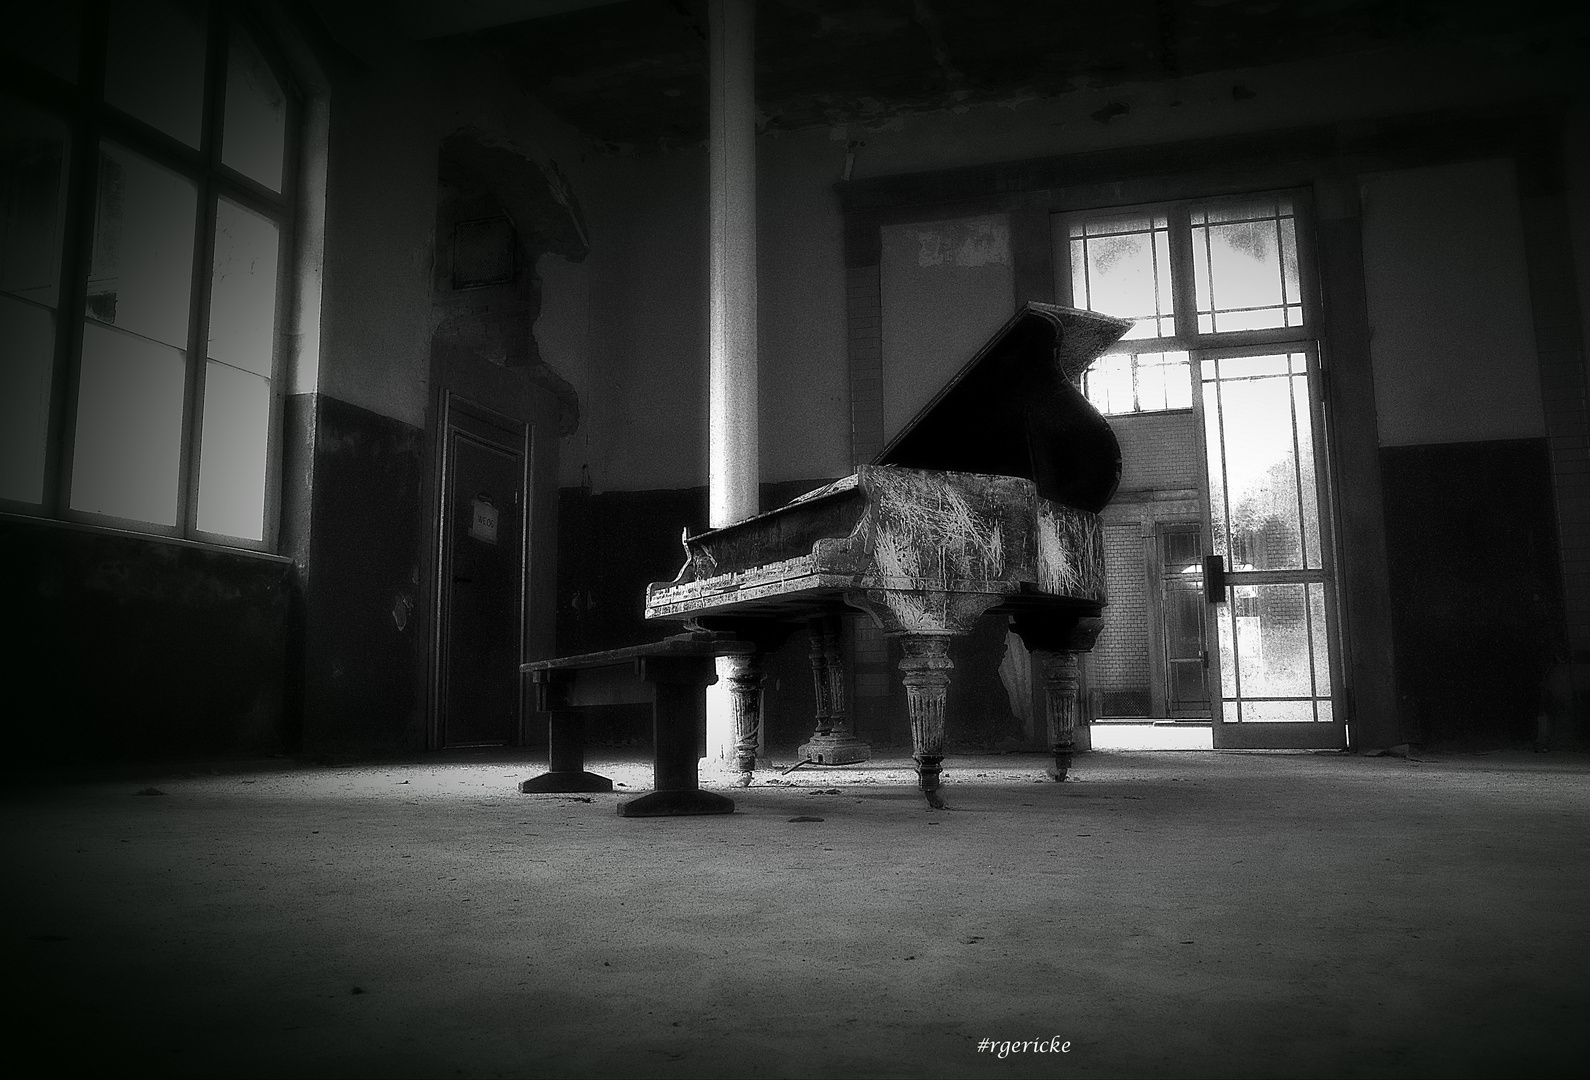 ... wanted a pianist